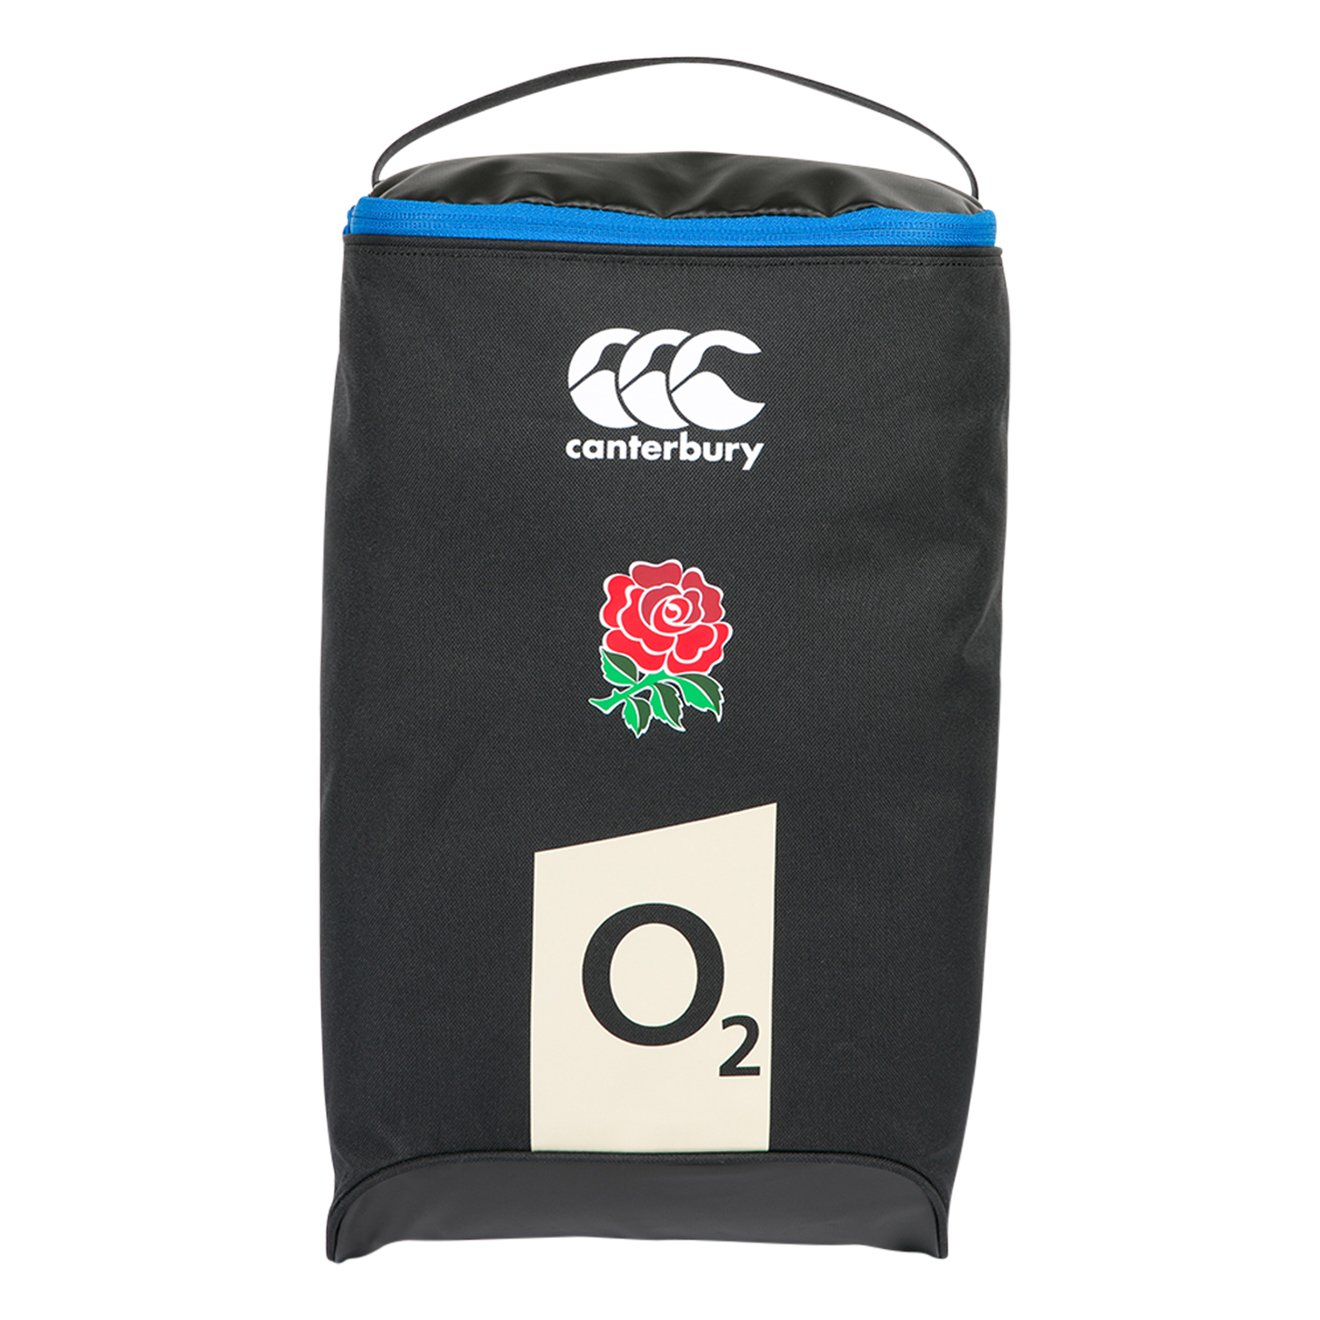 Canterbury Of New Zealand Unisex's Official England 18/19 Rugby Bootbag, Anthracite, One Size E201438A90